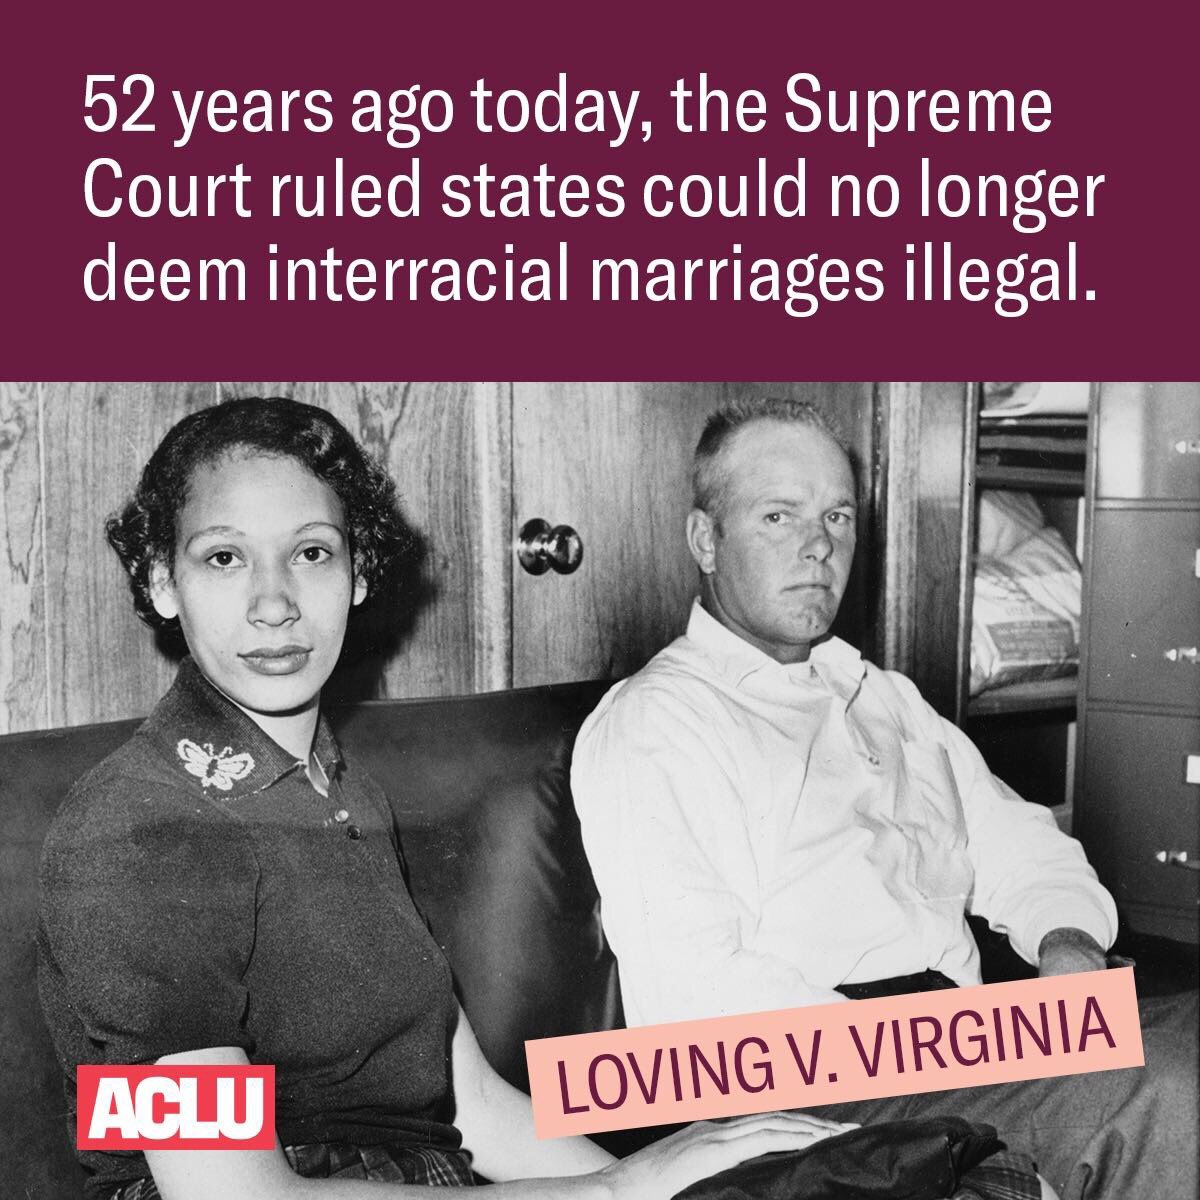 @ACLU's photo on #LovingDay